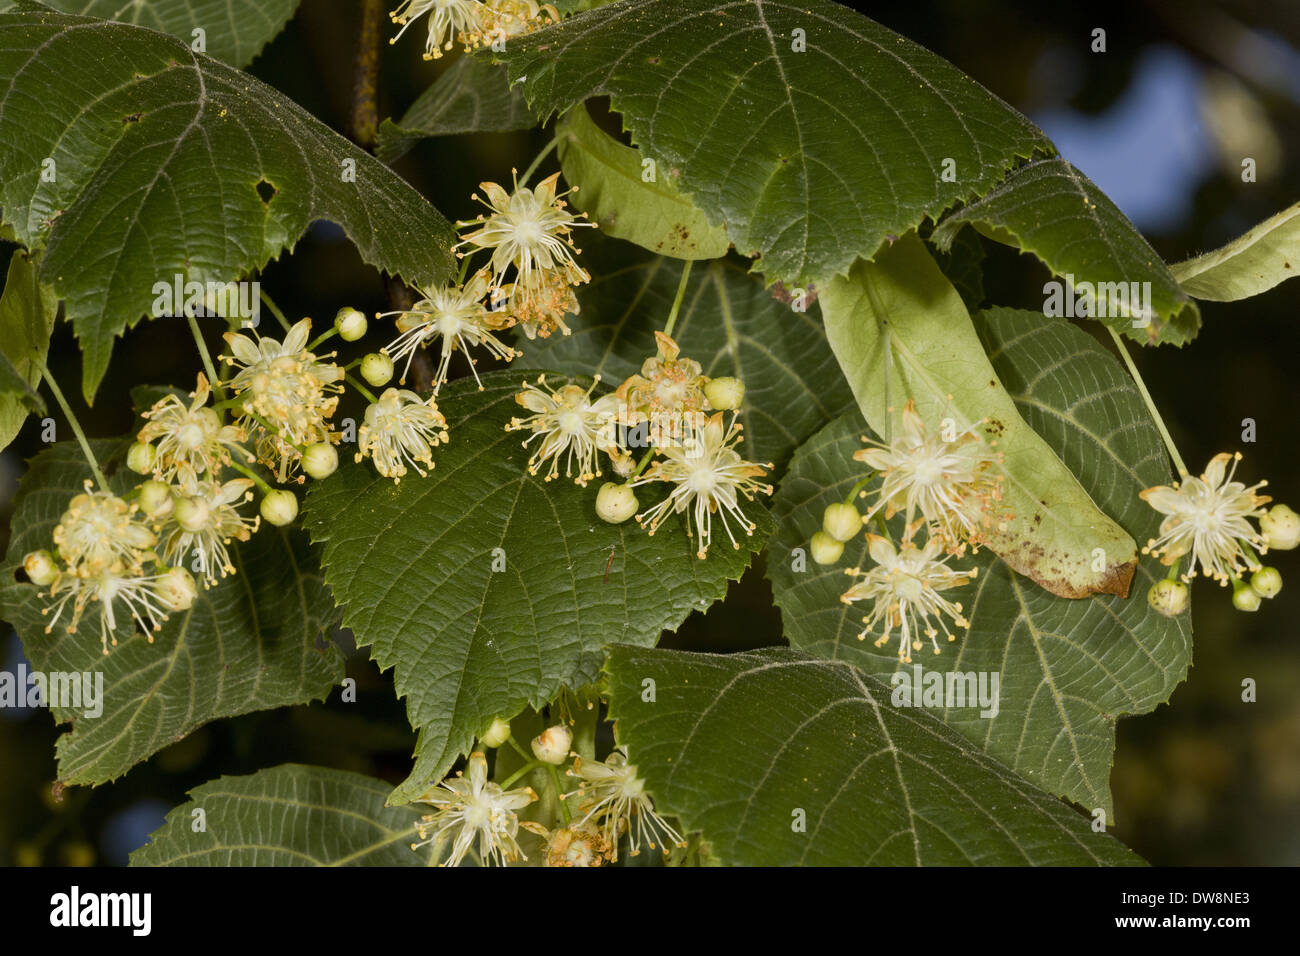 Large-leafed Lime (Tilia platyphyllos) close-up of flowers and leaves Central France June Stock Photo